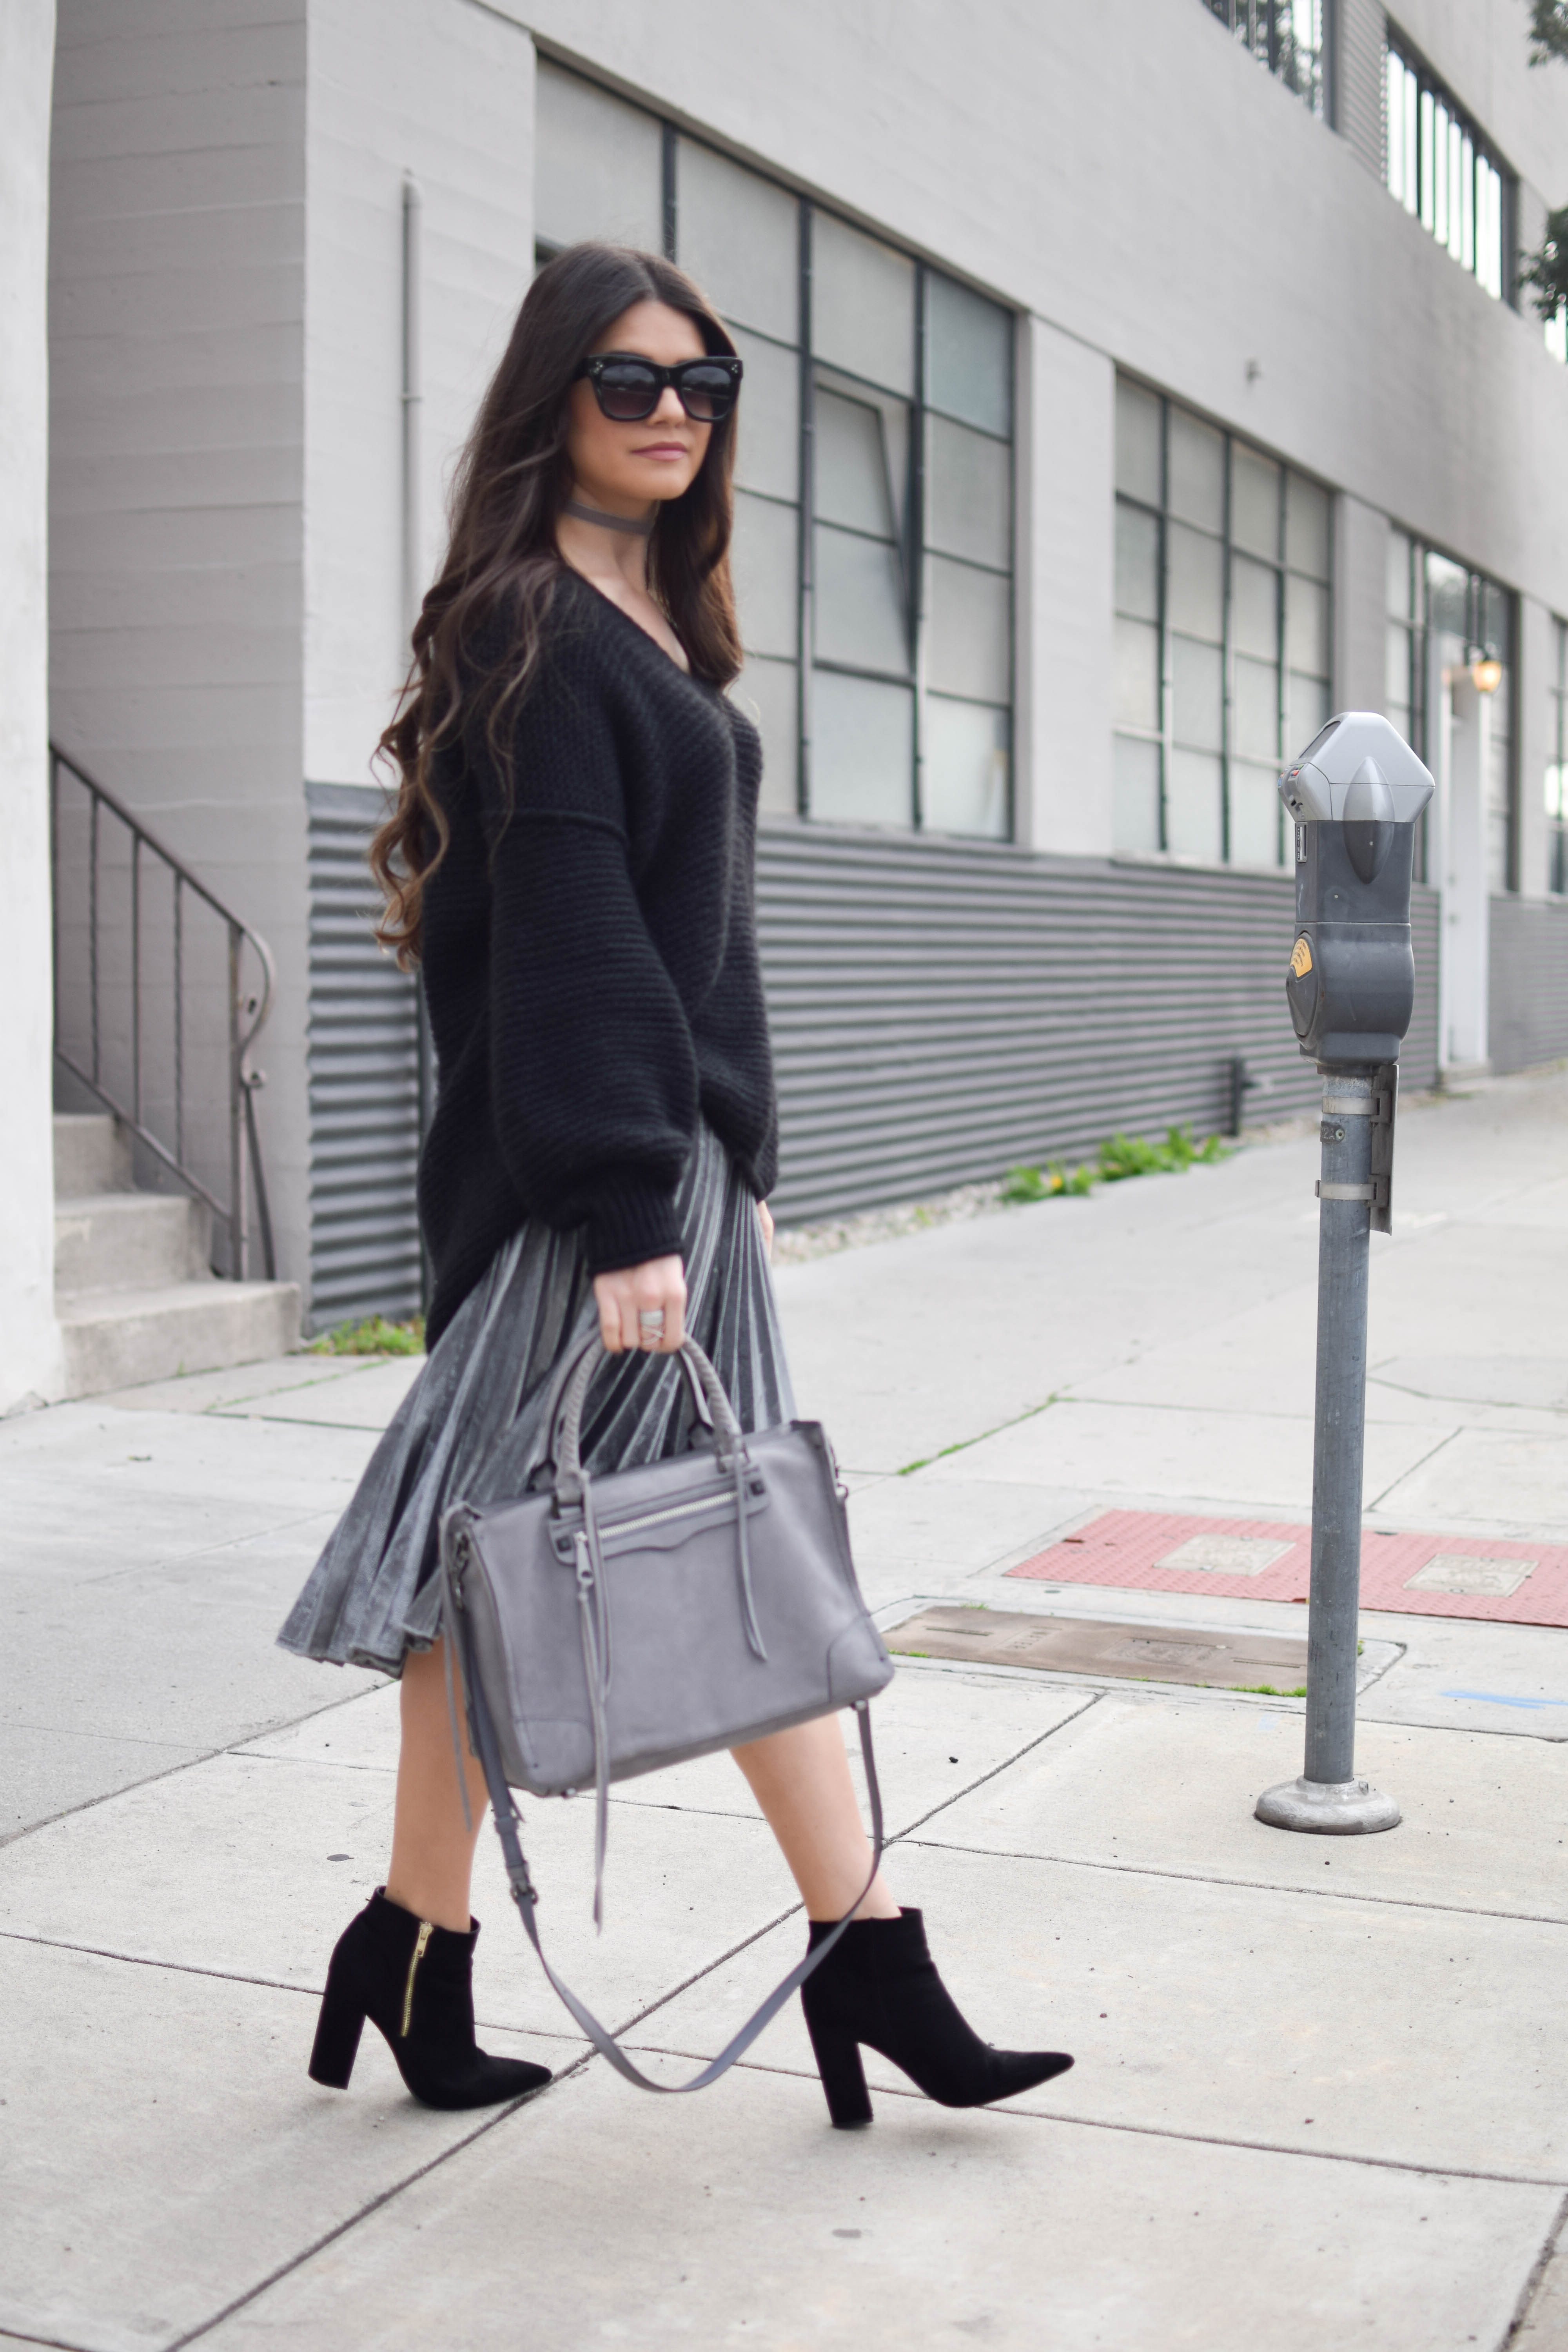 Metallic Skirt + Cozy Sweater